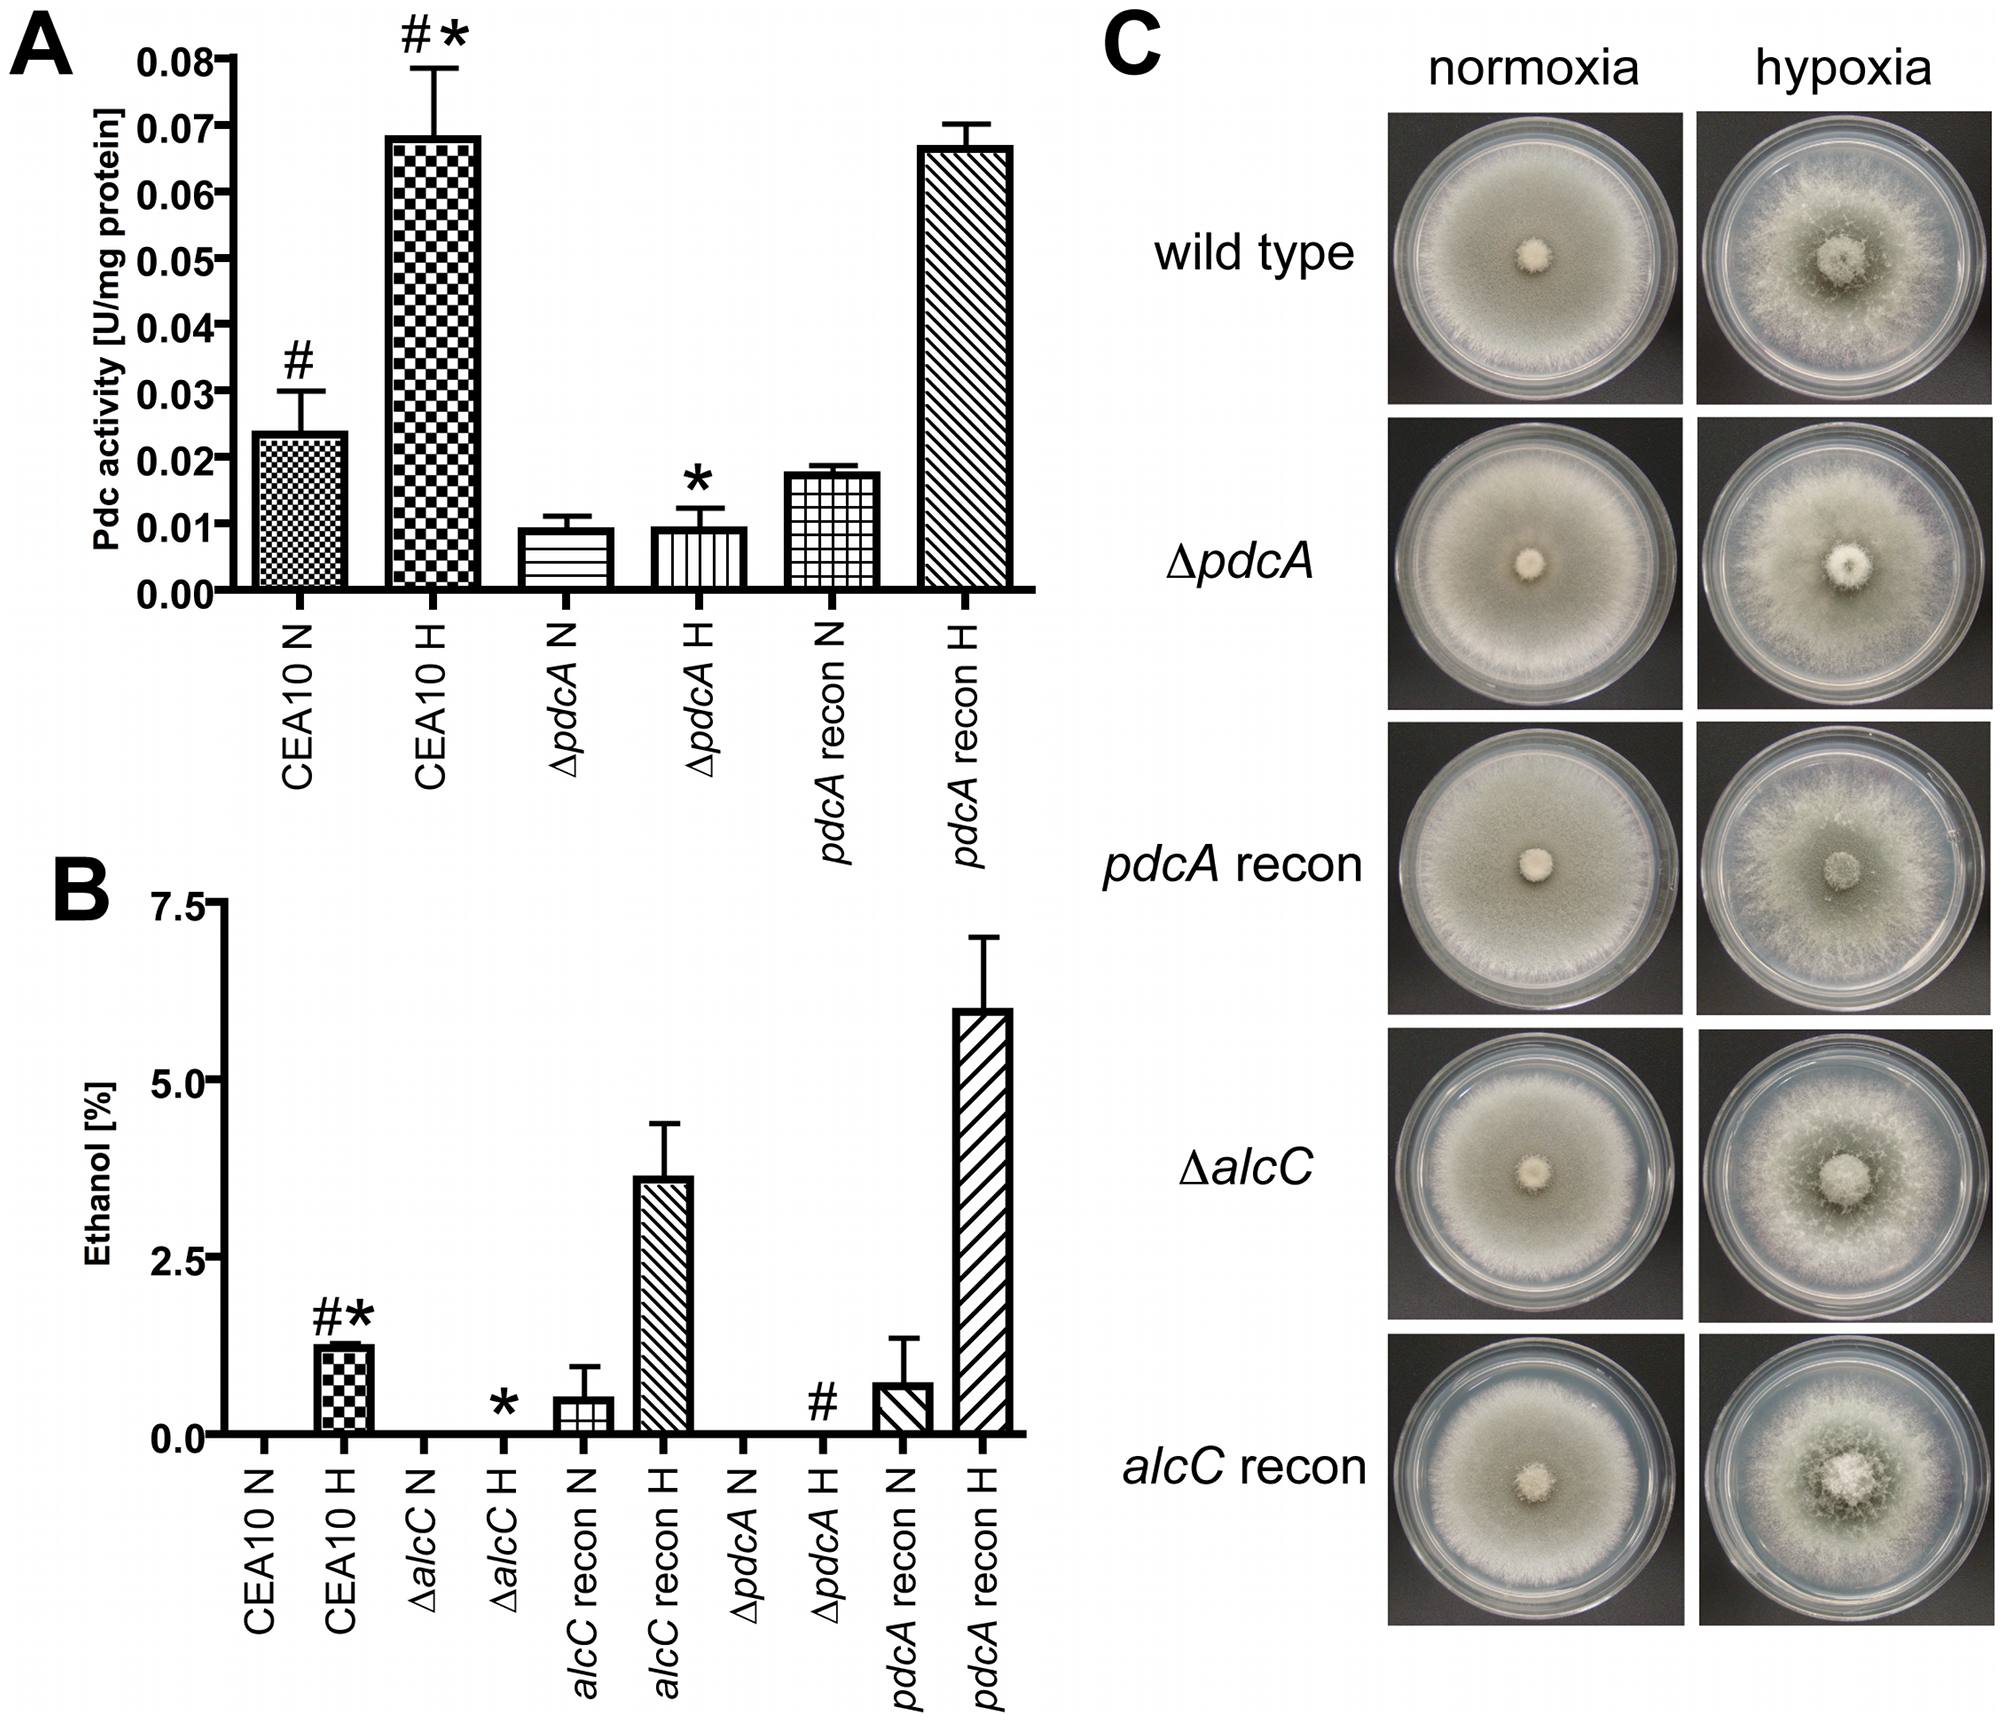 PdcA and AlcC are required for <i>in vitro</i> ethanol fermentation but not hypoxic growth of <i>A. fumigatus</i>.